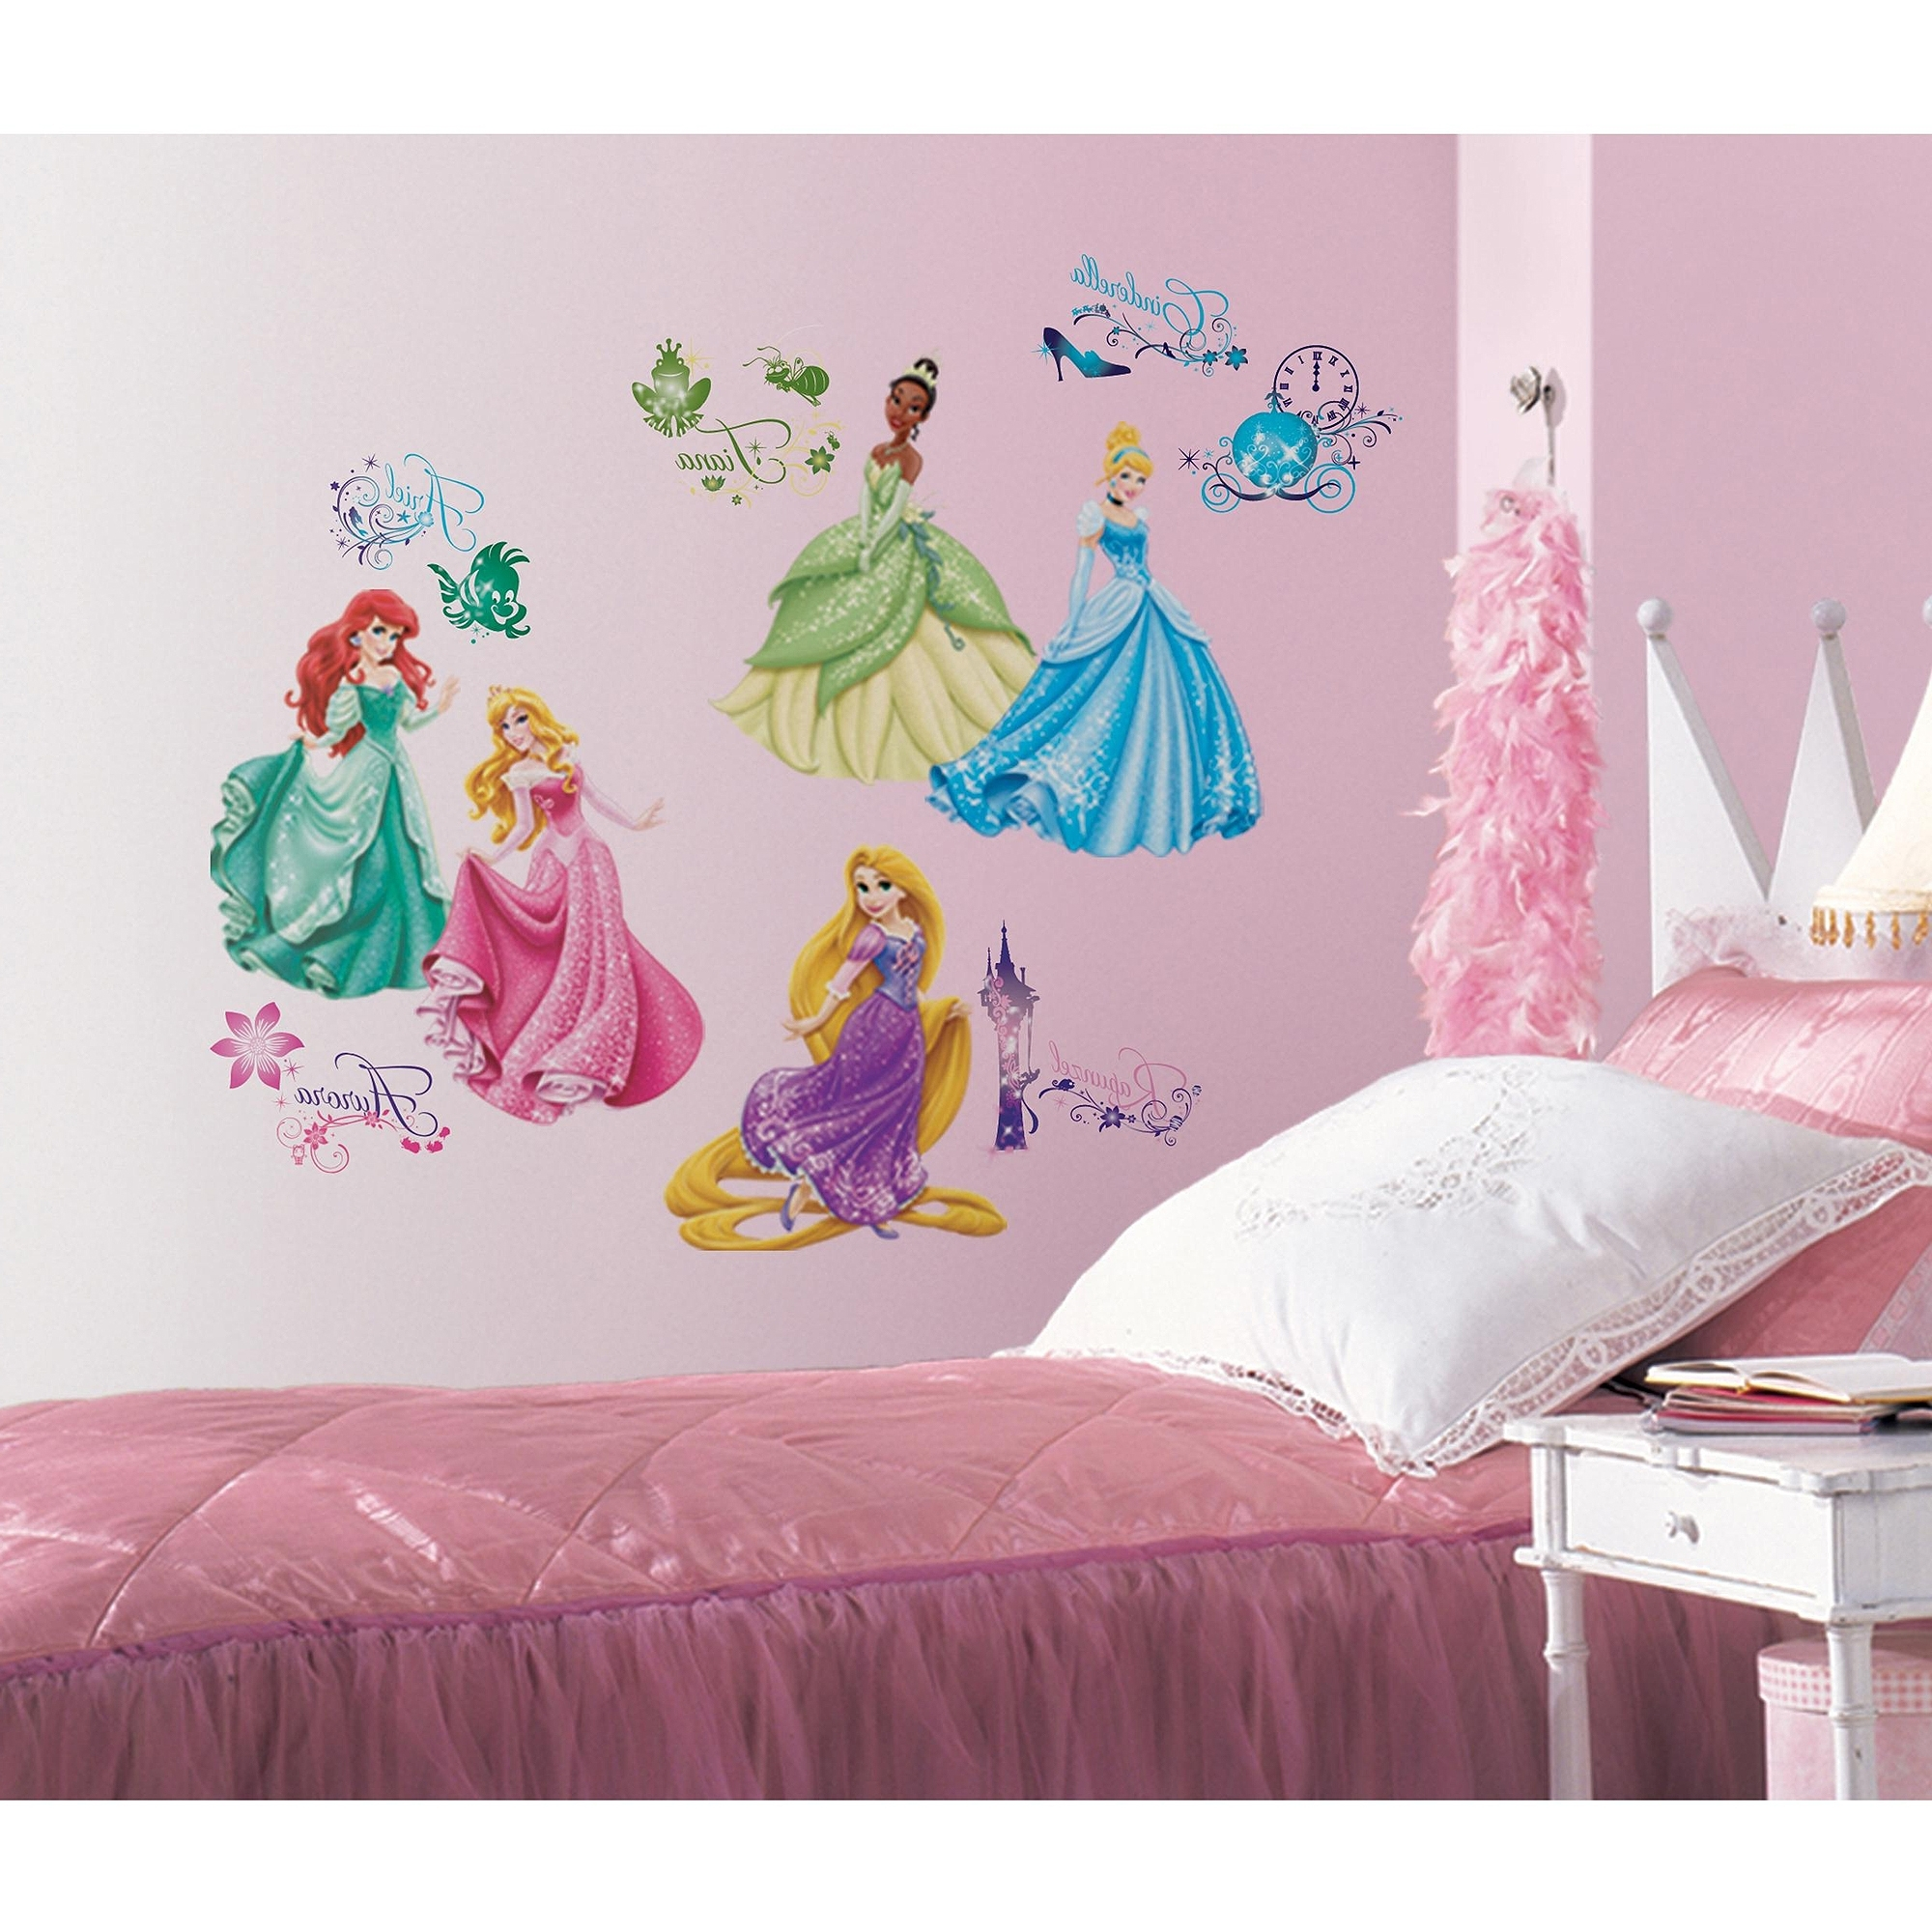 Disney Princess Royal Debut Peel And Stick Wall Decals – Walmart With 2018 Preschool Classroom Wall Decals (View 6 of 15)